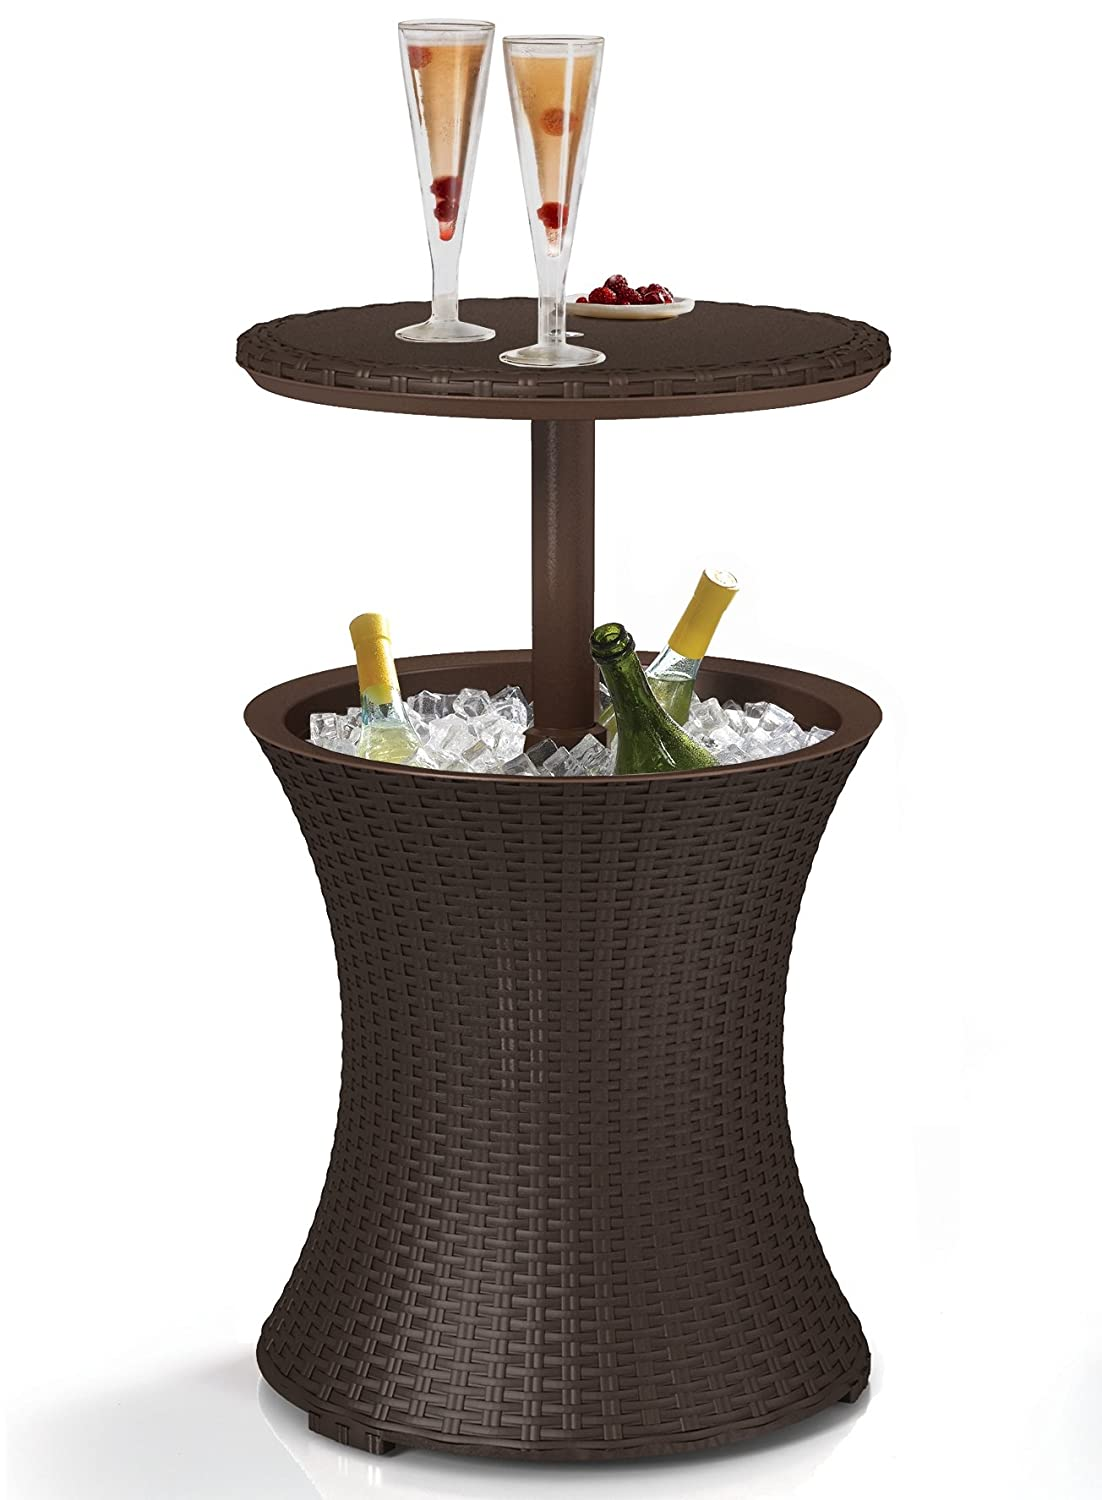 Merveilleux Amazon.com : Keter 7.5 Gal Cool Bar Rattan Style Outdoor Patio Pool Cooler  Table, Brown : Wicker Cooler : Garden U0026 Outdoor